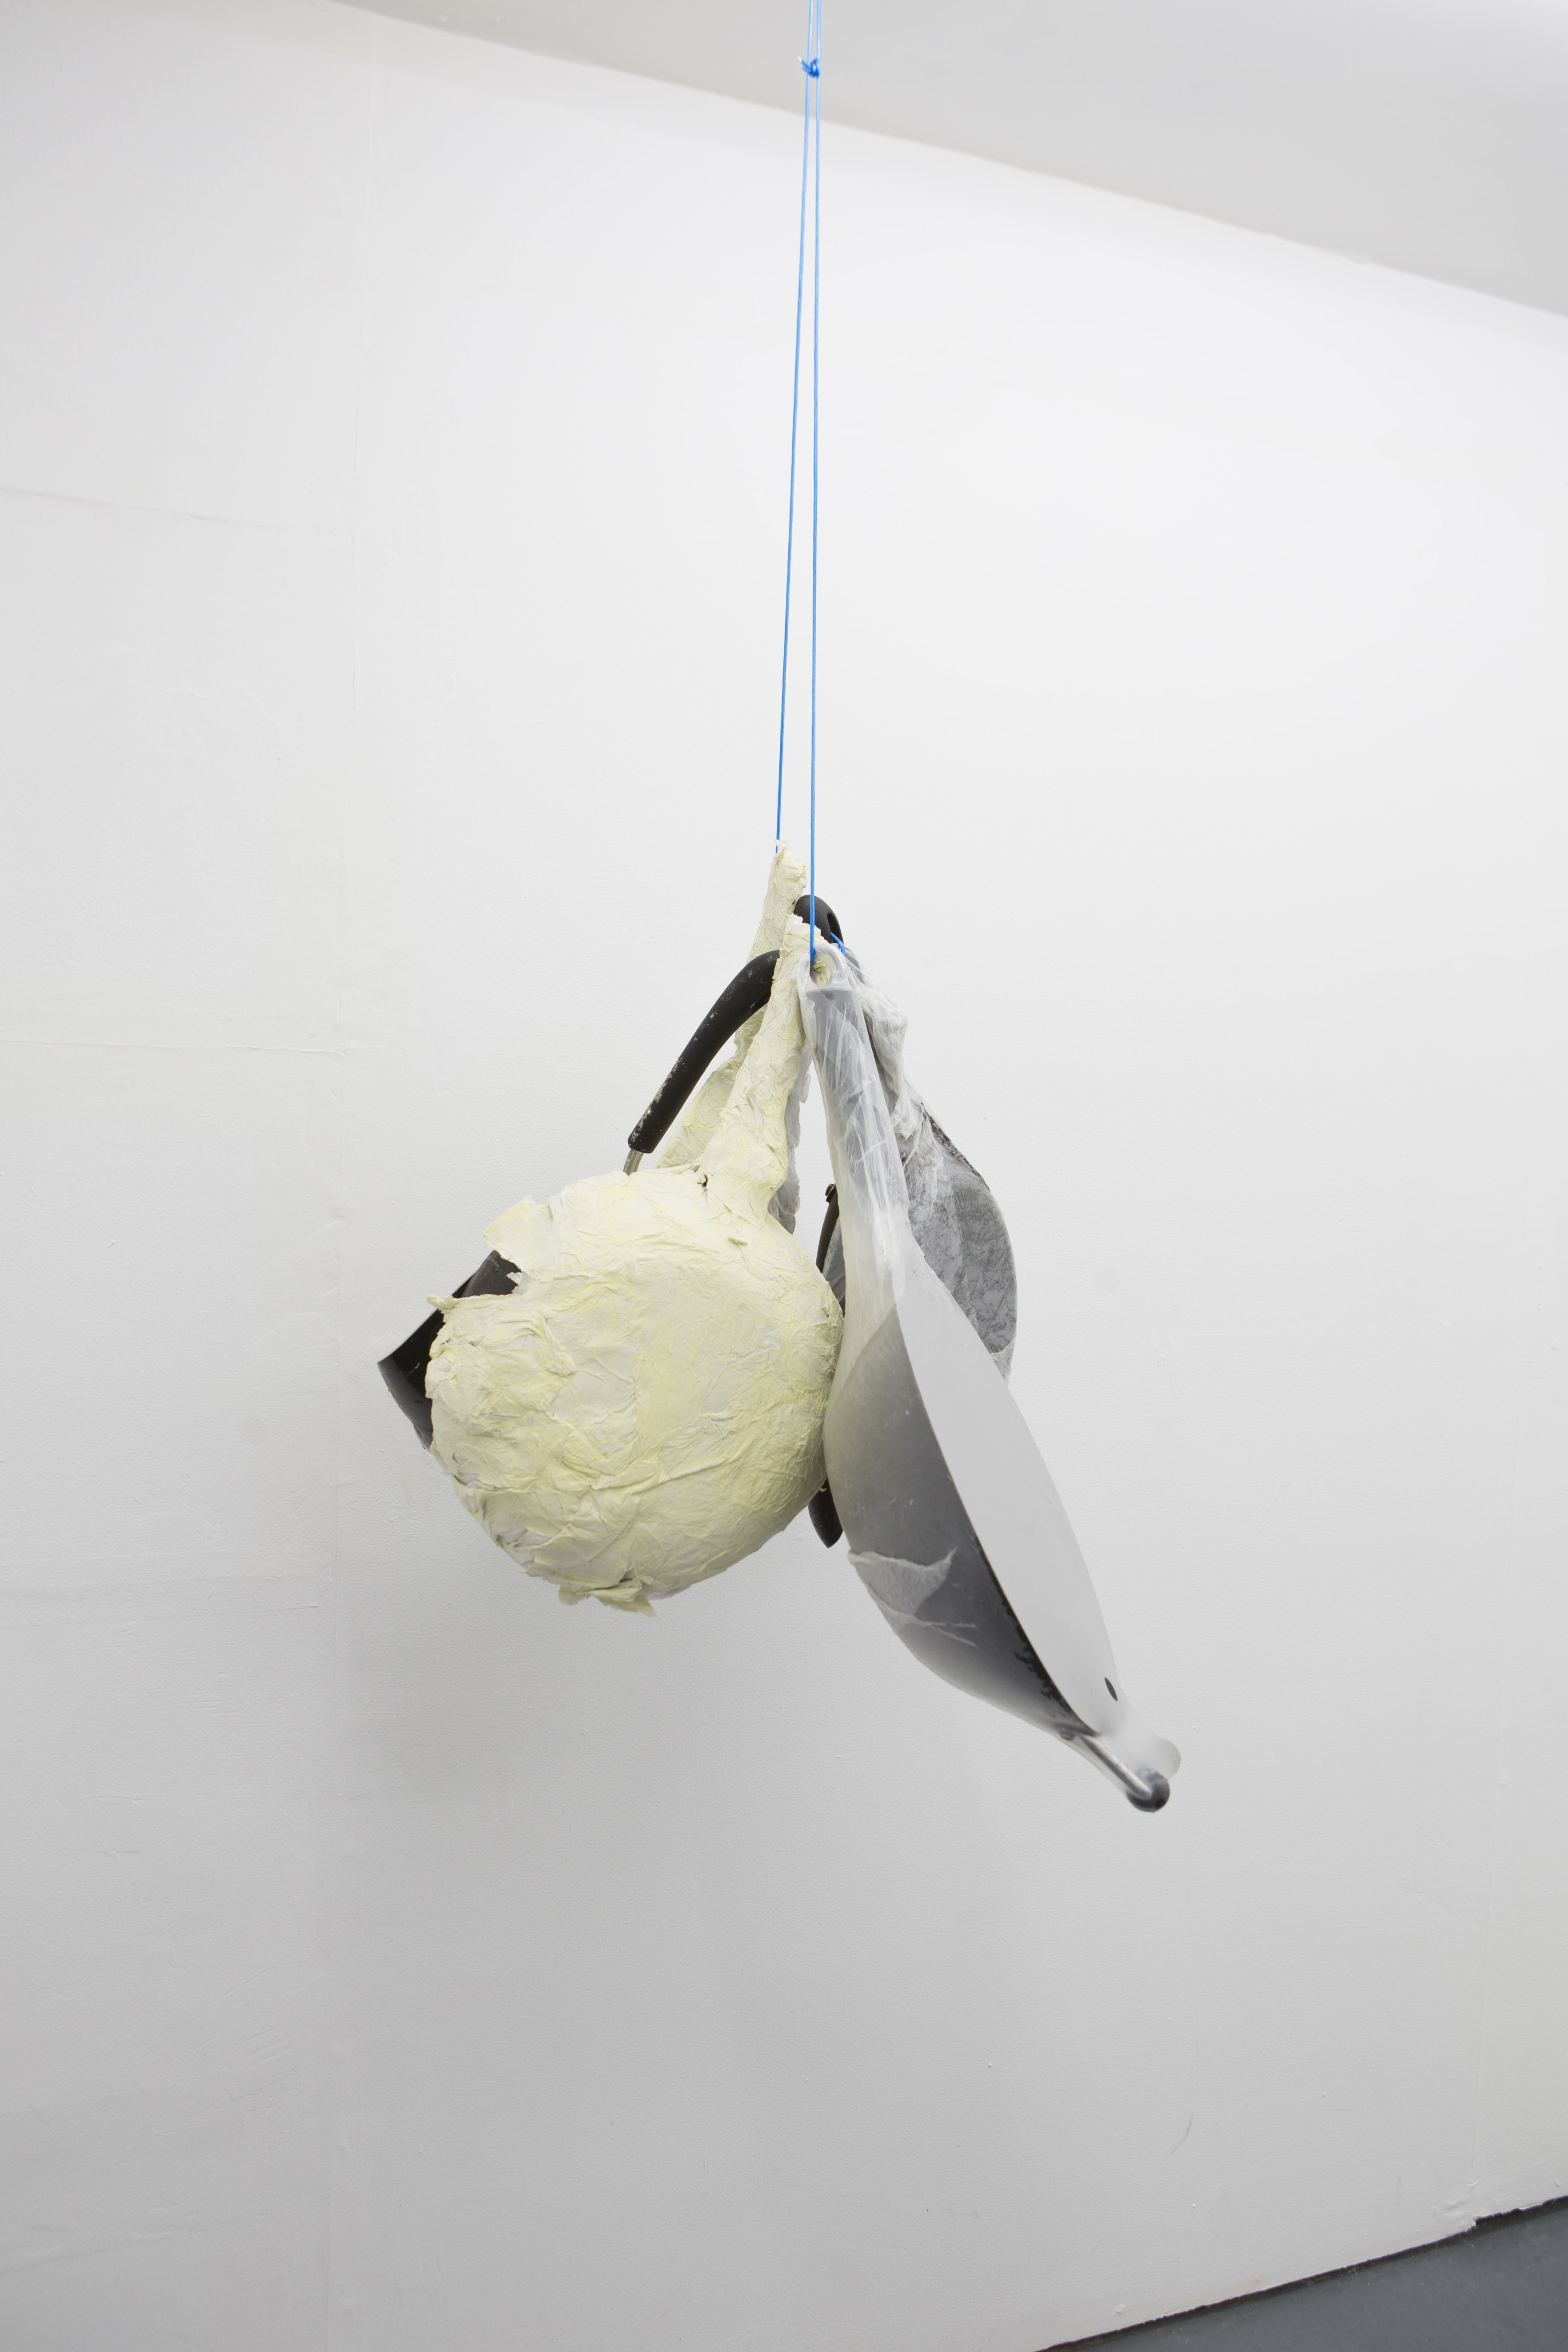 Thomas Greig Frying pans (2018); Dimensions variable; Frying pans, dust, plastic, tissue, acrylic paint, wire.